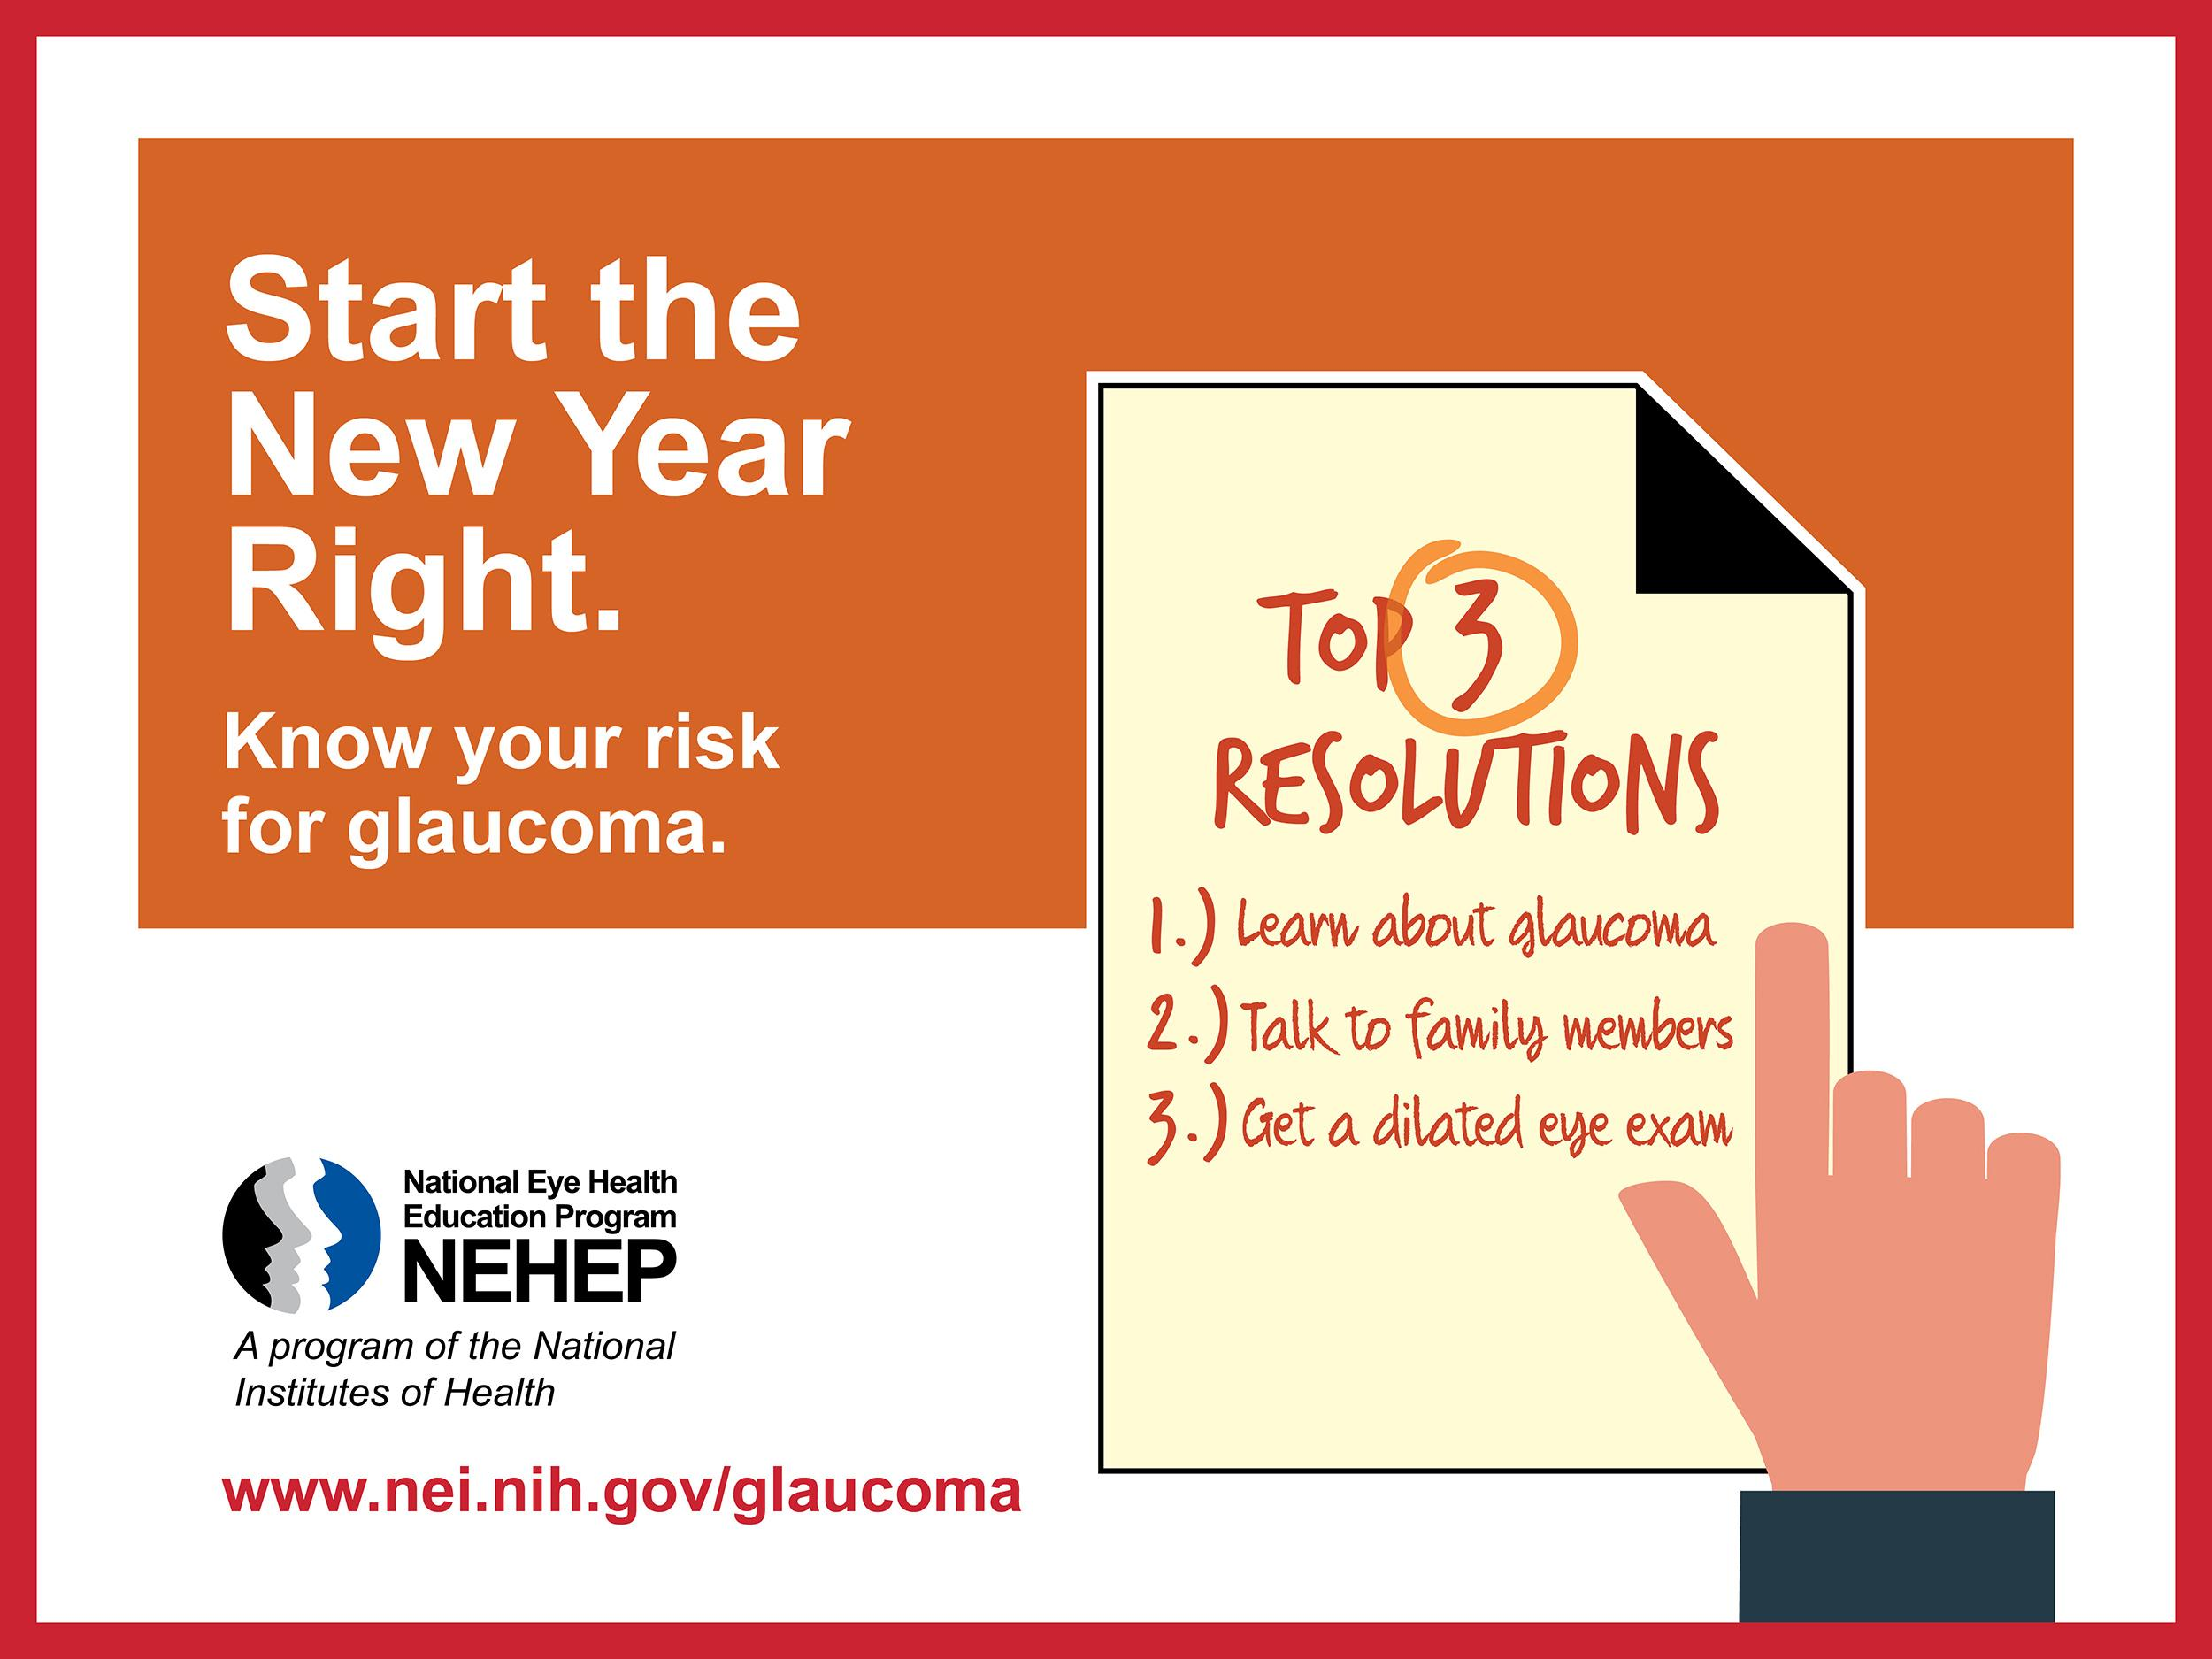 Start The New Year Right - Know Your Risk For Glaucoma